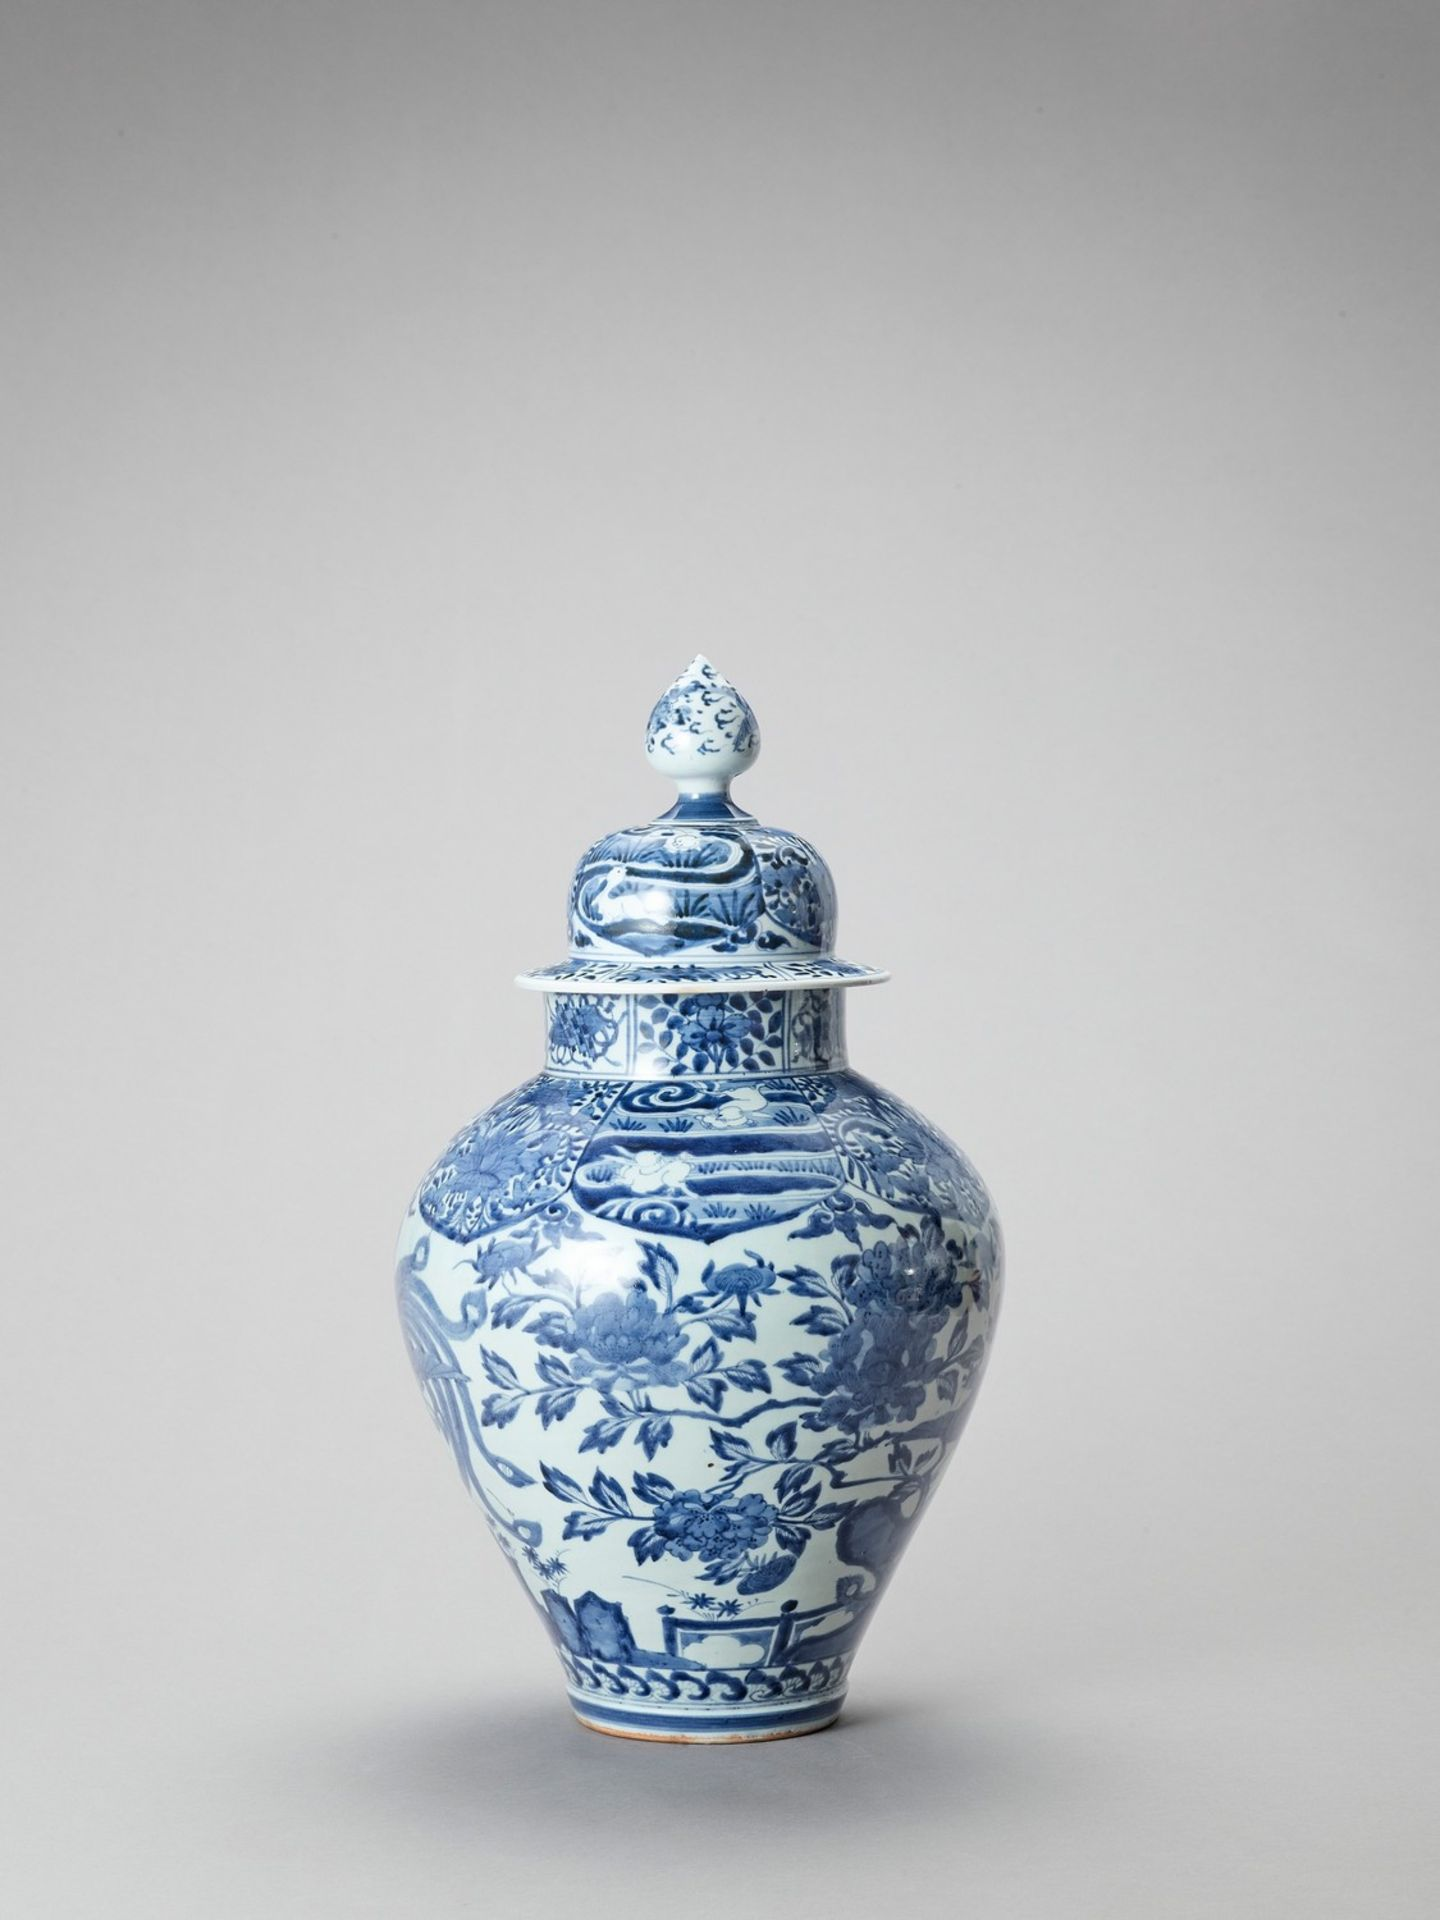 A LARGE BLUE AND WHITE PORCELAIN JAR AND COVER - Image 2 of 6